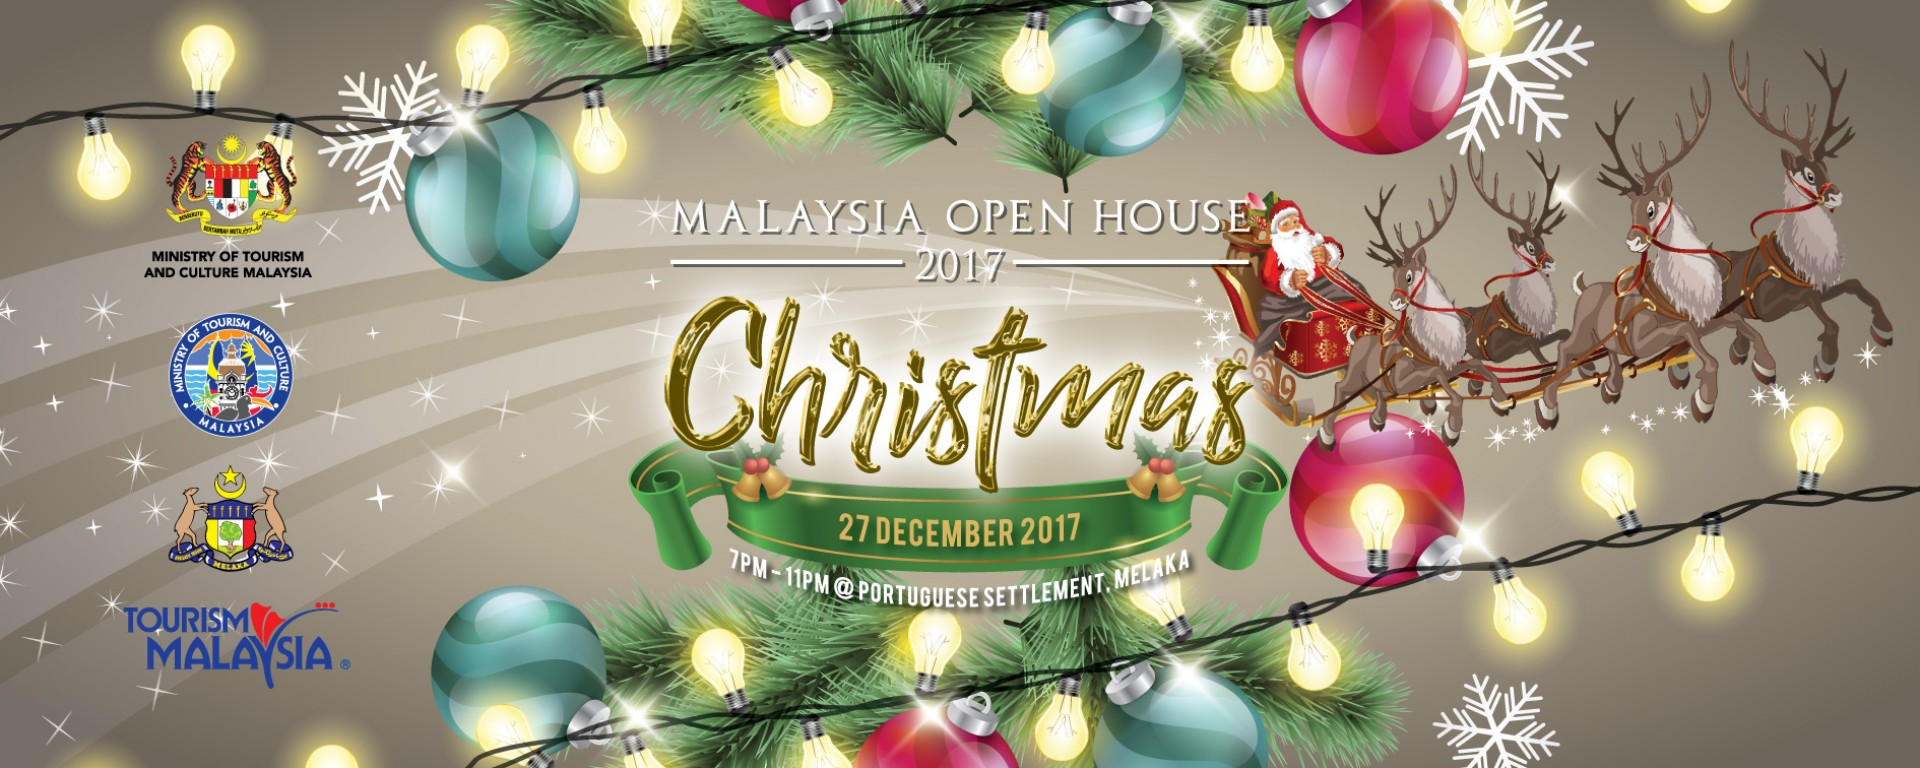 <div class='action'><a href='http://www.malaysia.travel/en/my/events/2017/12/christmas' class='btn btn-danger btn-lg' target='_blank'>Find Out More</a></div>